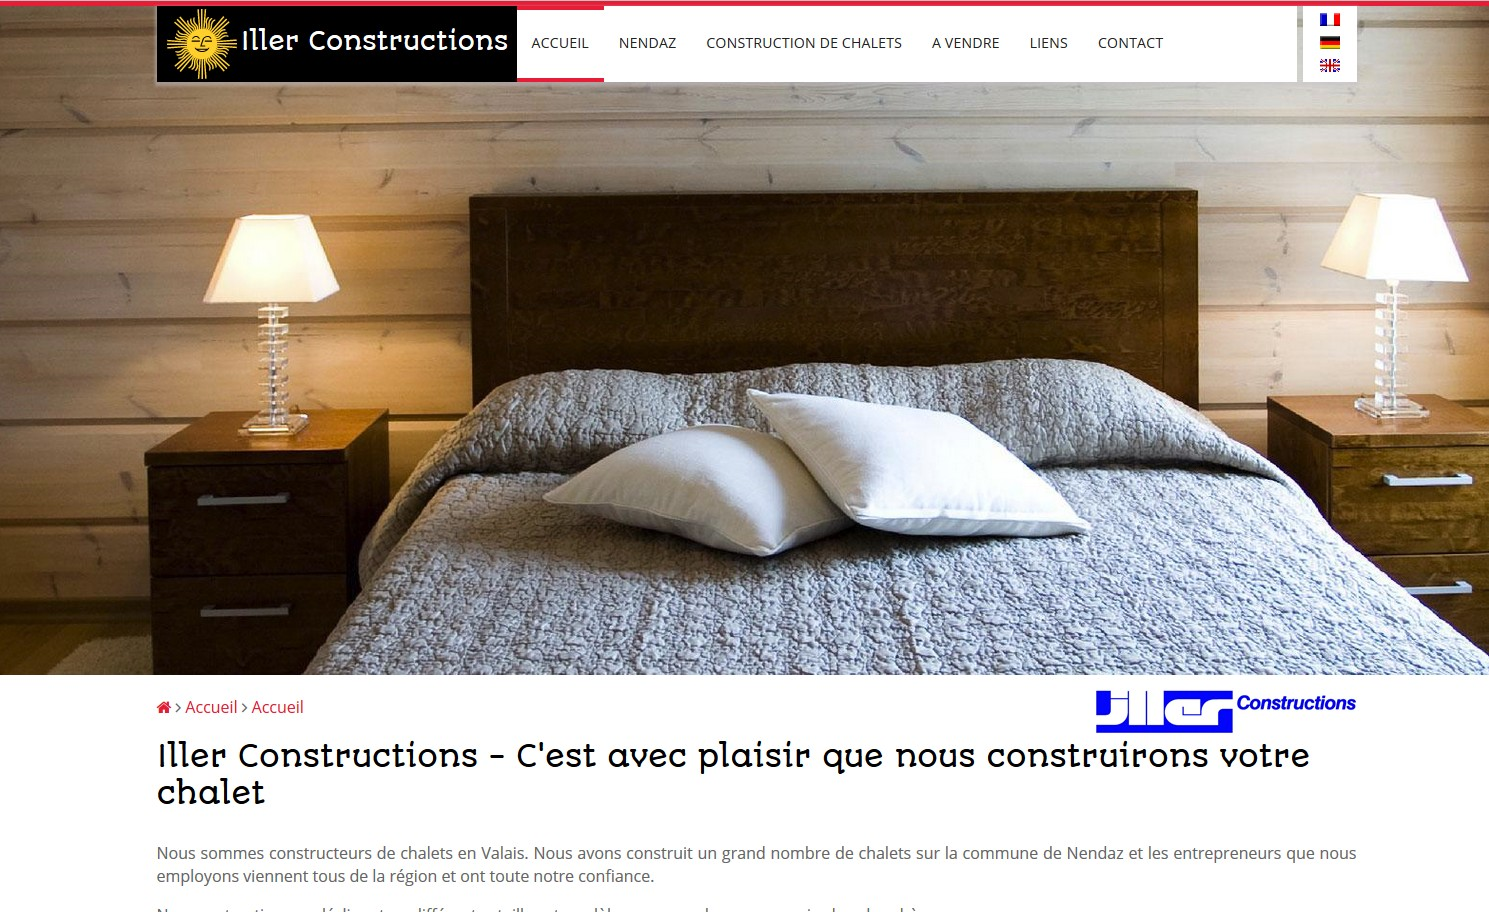 Iller Constructions